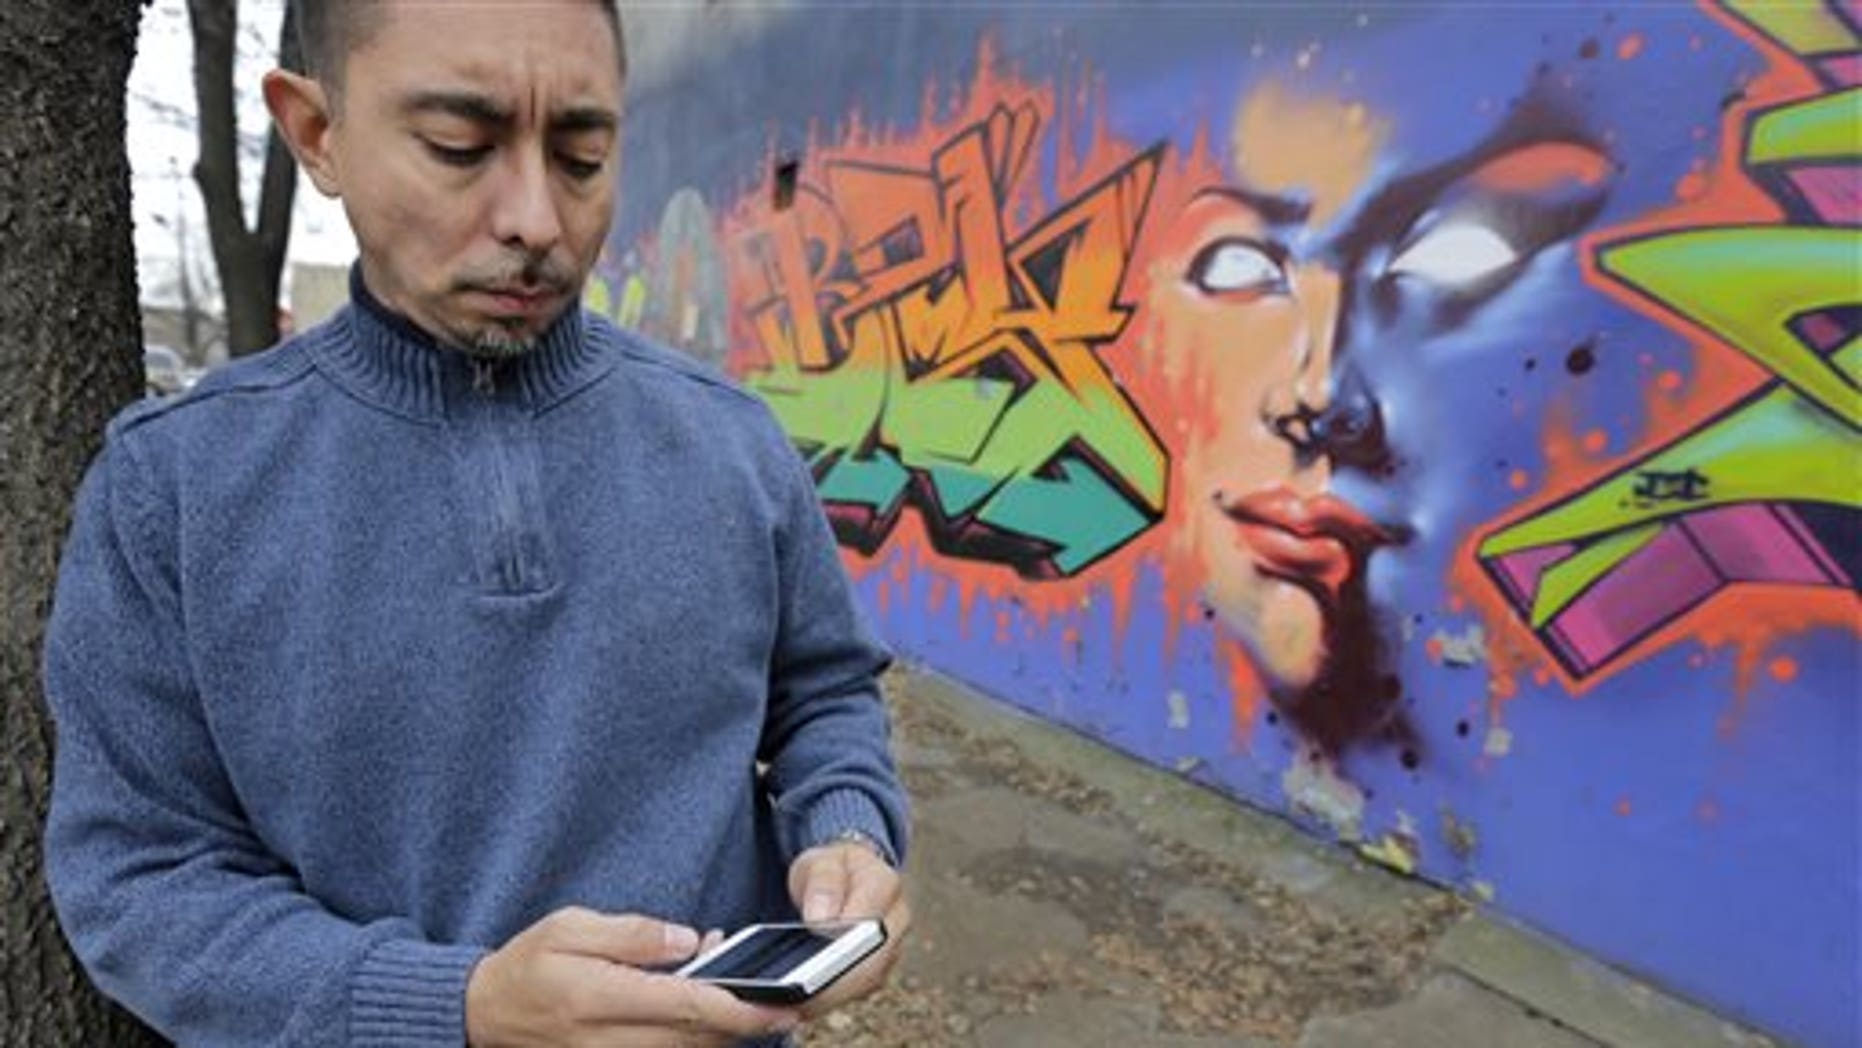 "In this Dec. 6, 2013 photo, Eddie Bocanegra, co-executive director of the YMCA of Metropolitan Chicago's Youth Safety and Violence Prevention program, stands with his phone outside the organization's center in the Pilson neighborhood of Chicago. With the advent of social media usage by gangs, he says, ""In the past you would have gangs approach you and say, 'Listen we're from the 'hood. Maybe you should get involved.' Now the kids are going to the gangs saying, 'I saw this. How can I be a part of it?'"" (AP Photo/M. Spencer Green)"